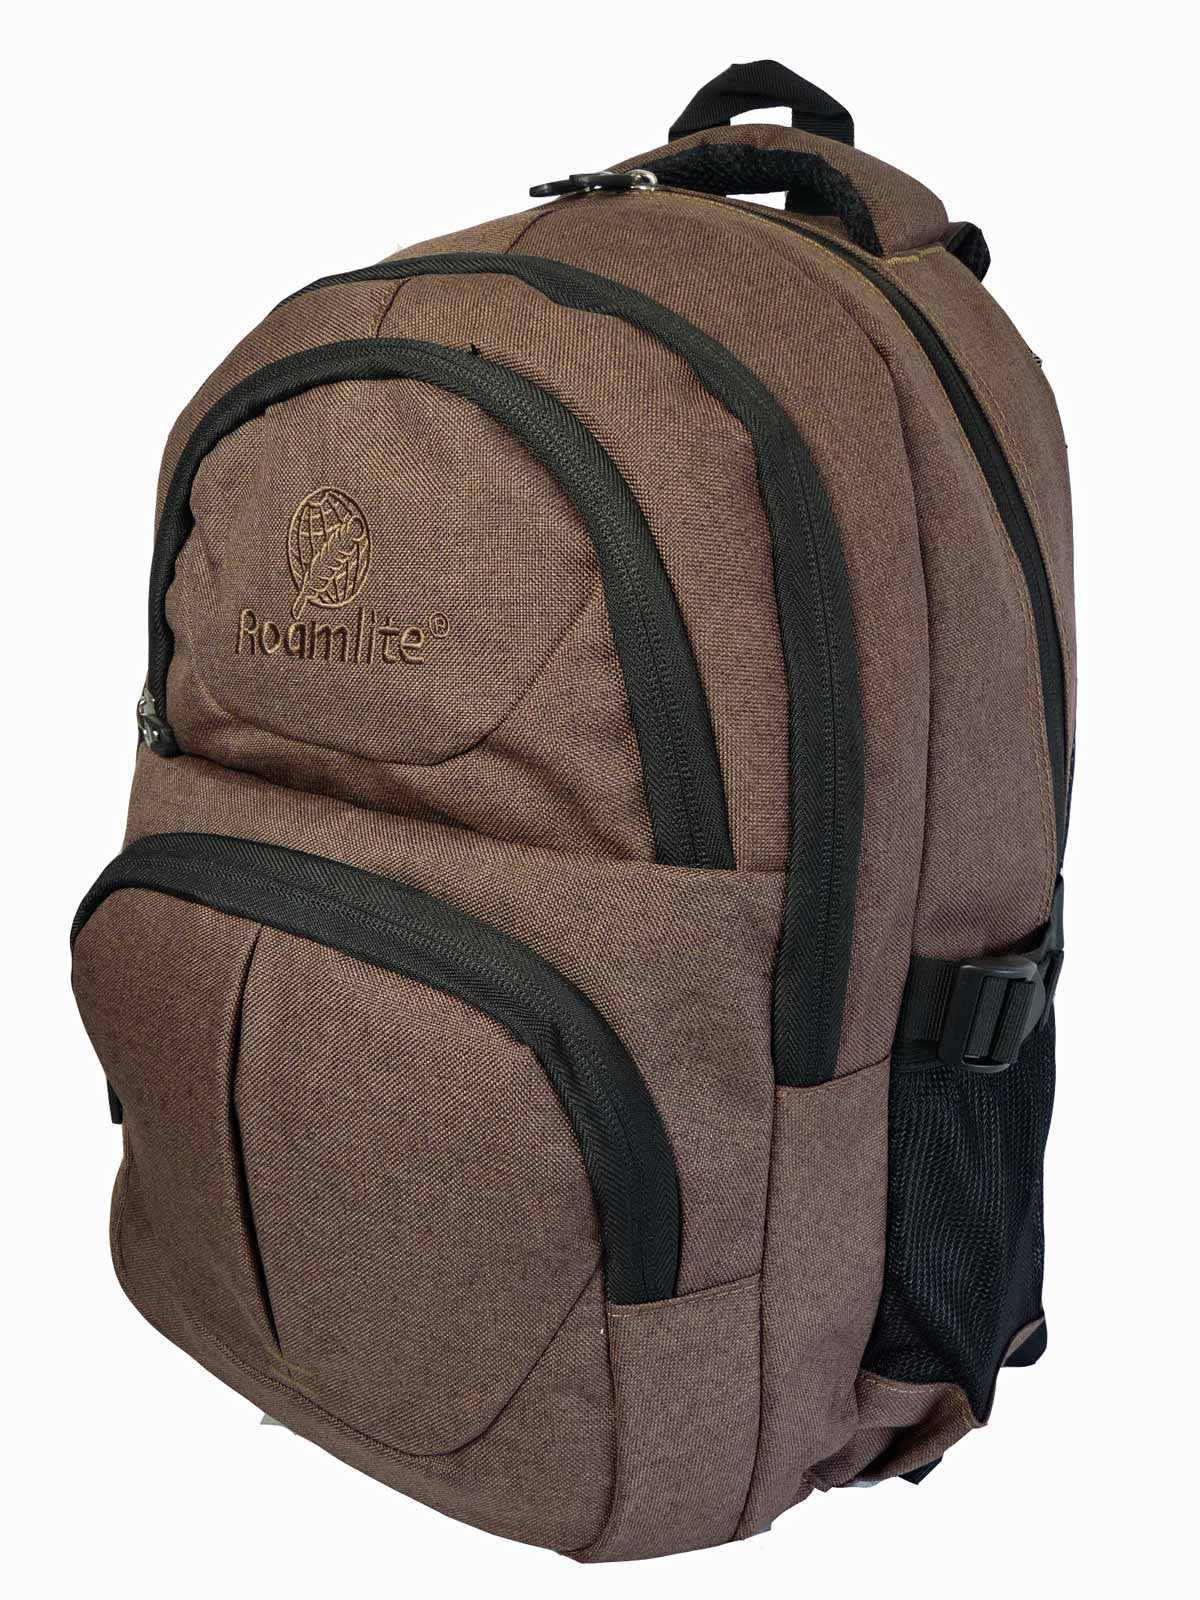 Laptop Macbook Backpack Rucksack Bag RL43B Side View